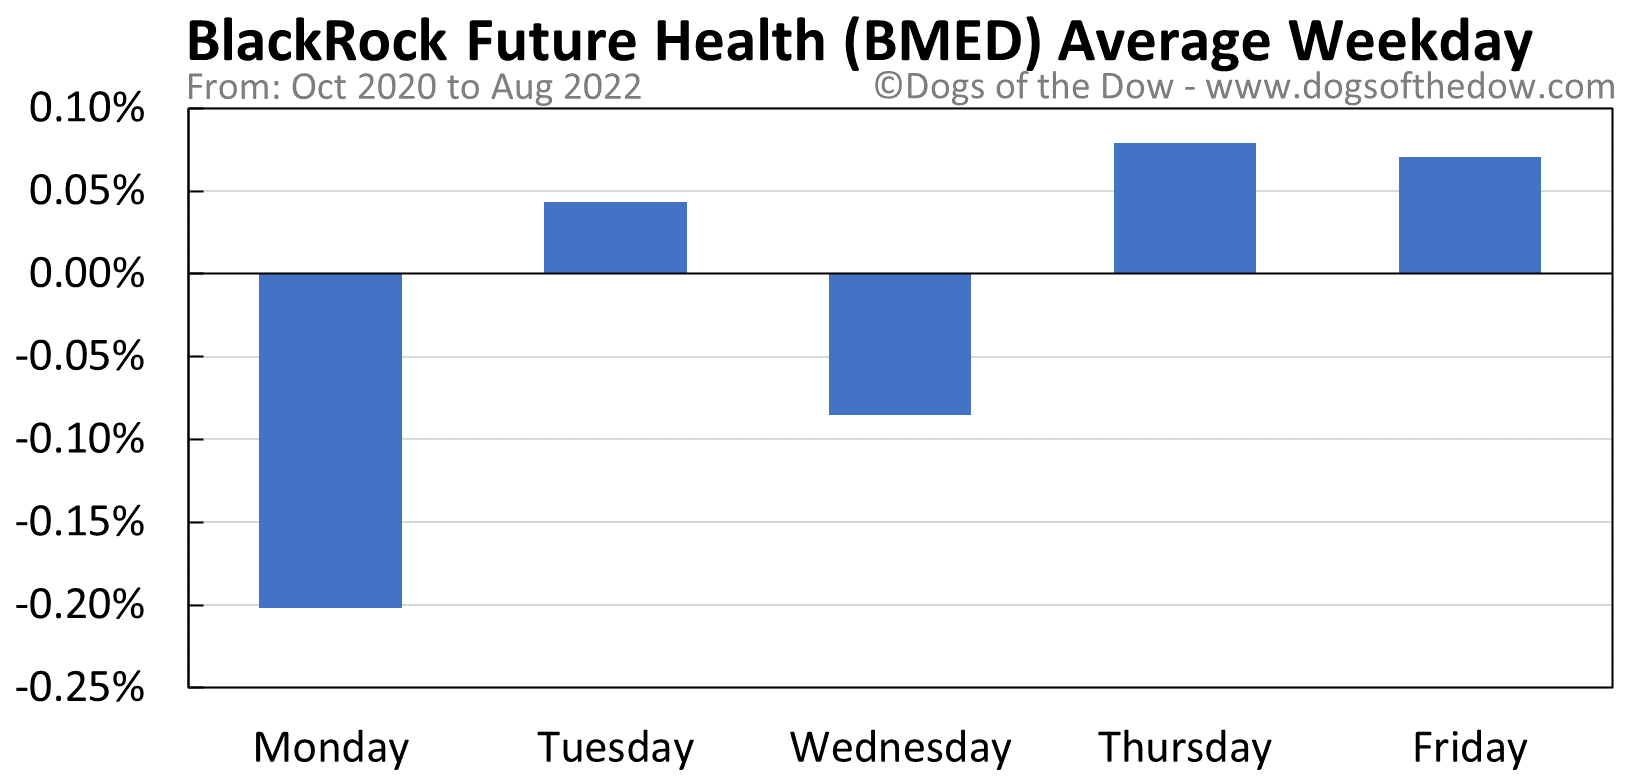 BMED average weekday chart